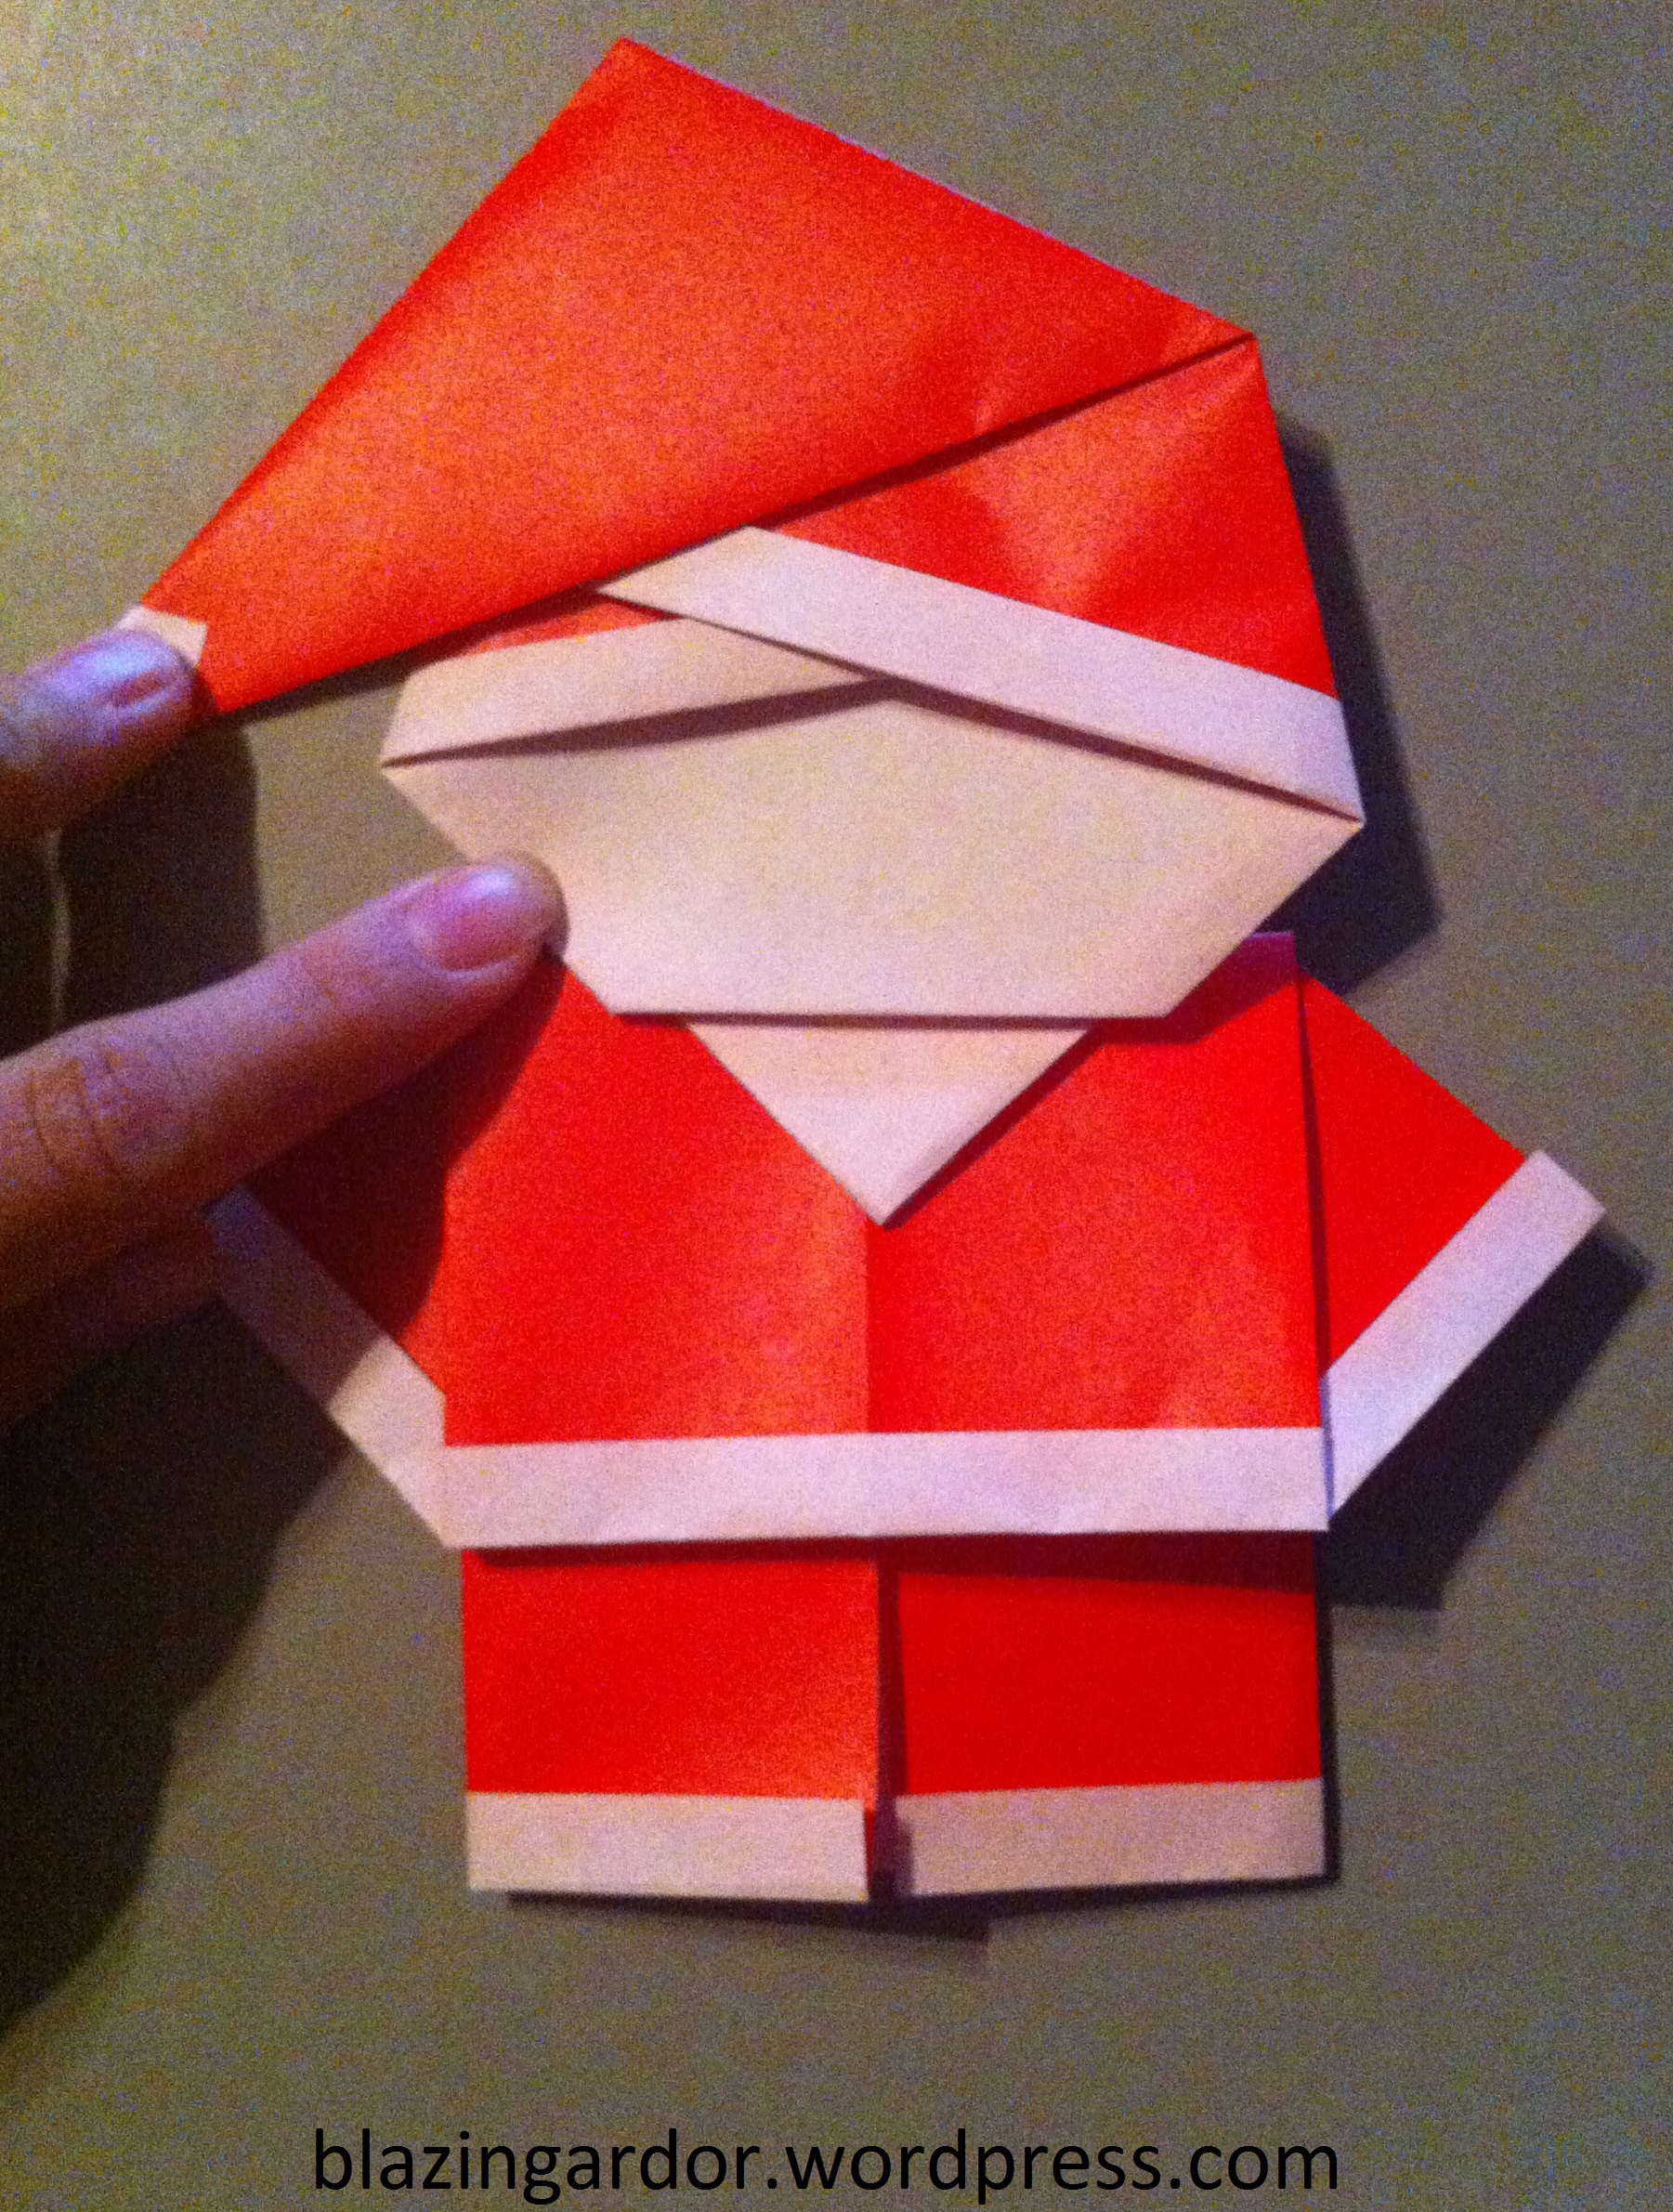 Origami santa how to guide blazing ardor for How to make easy crafts step by step